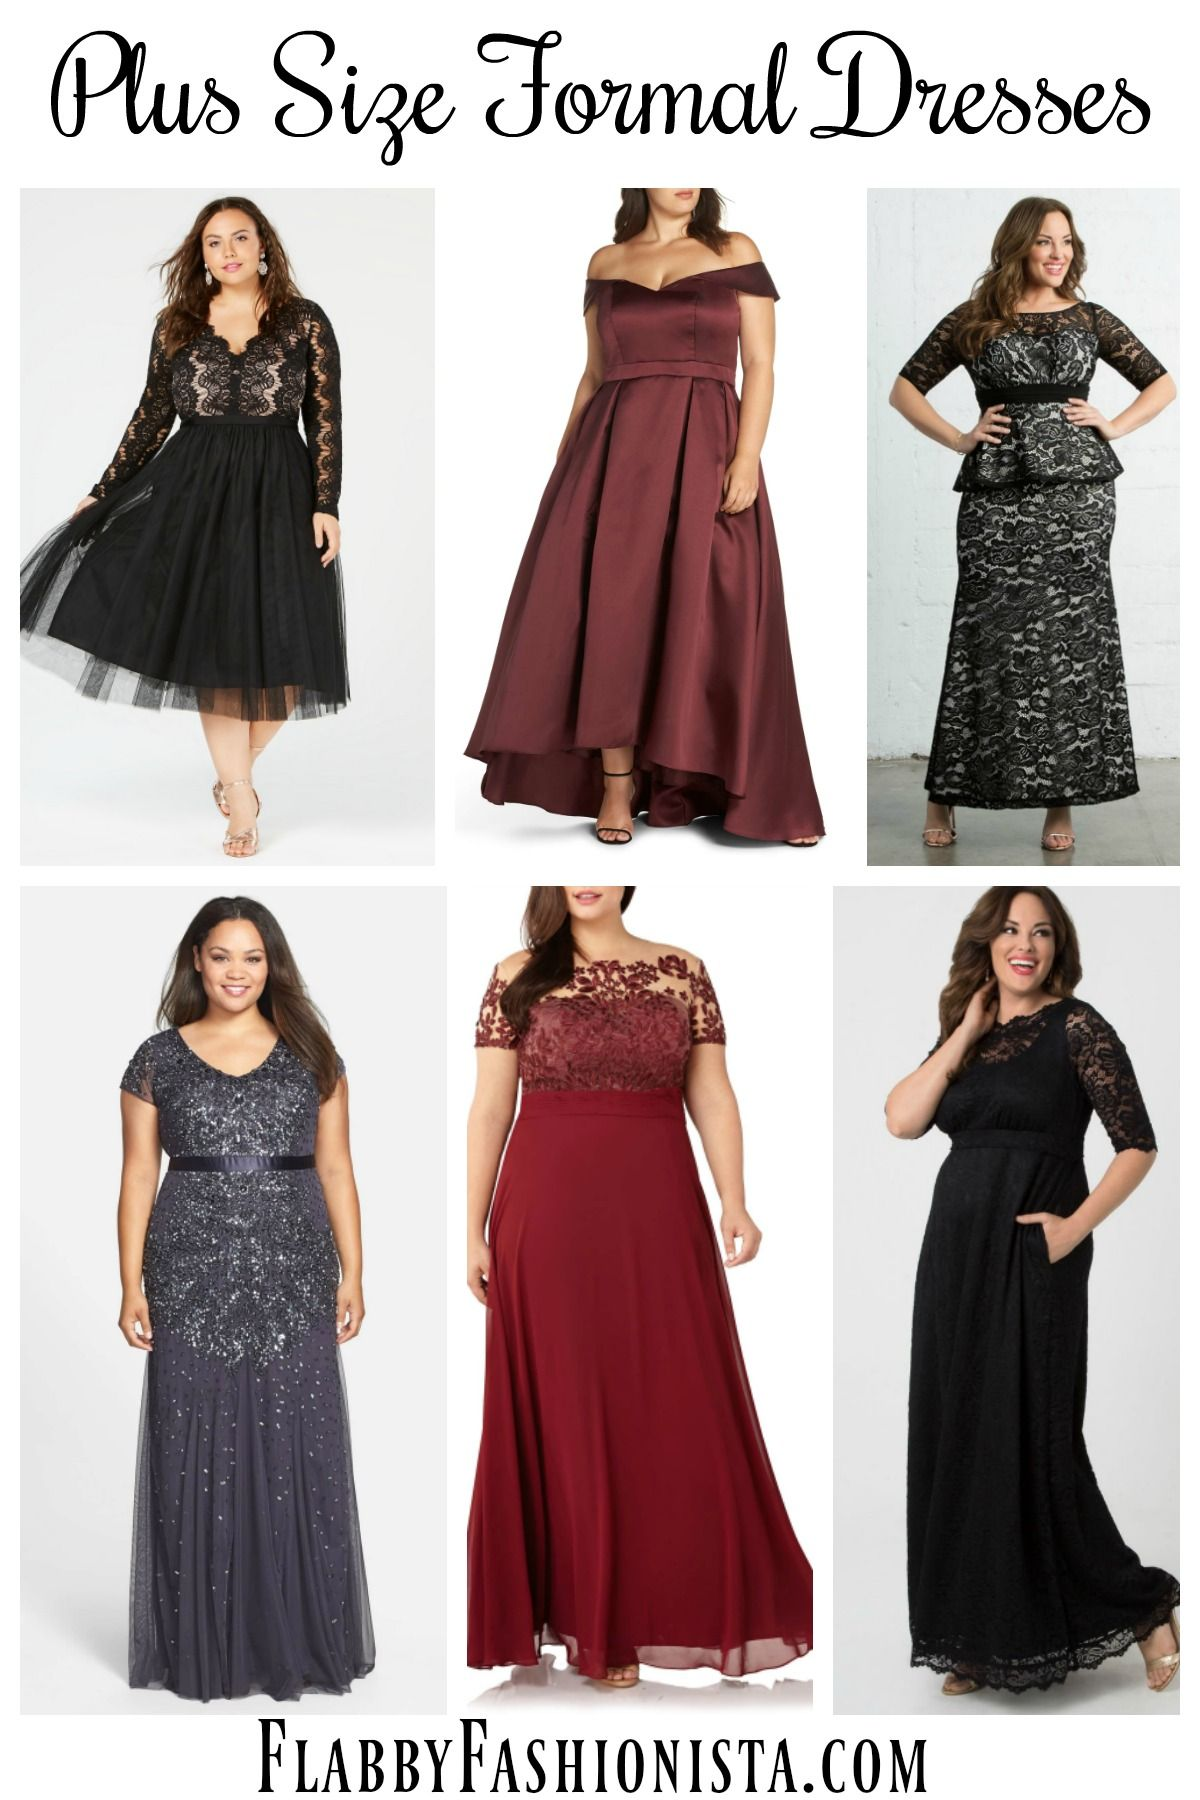 Finding plus size formal dresses that fit and flatter can be